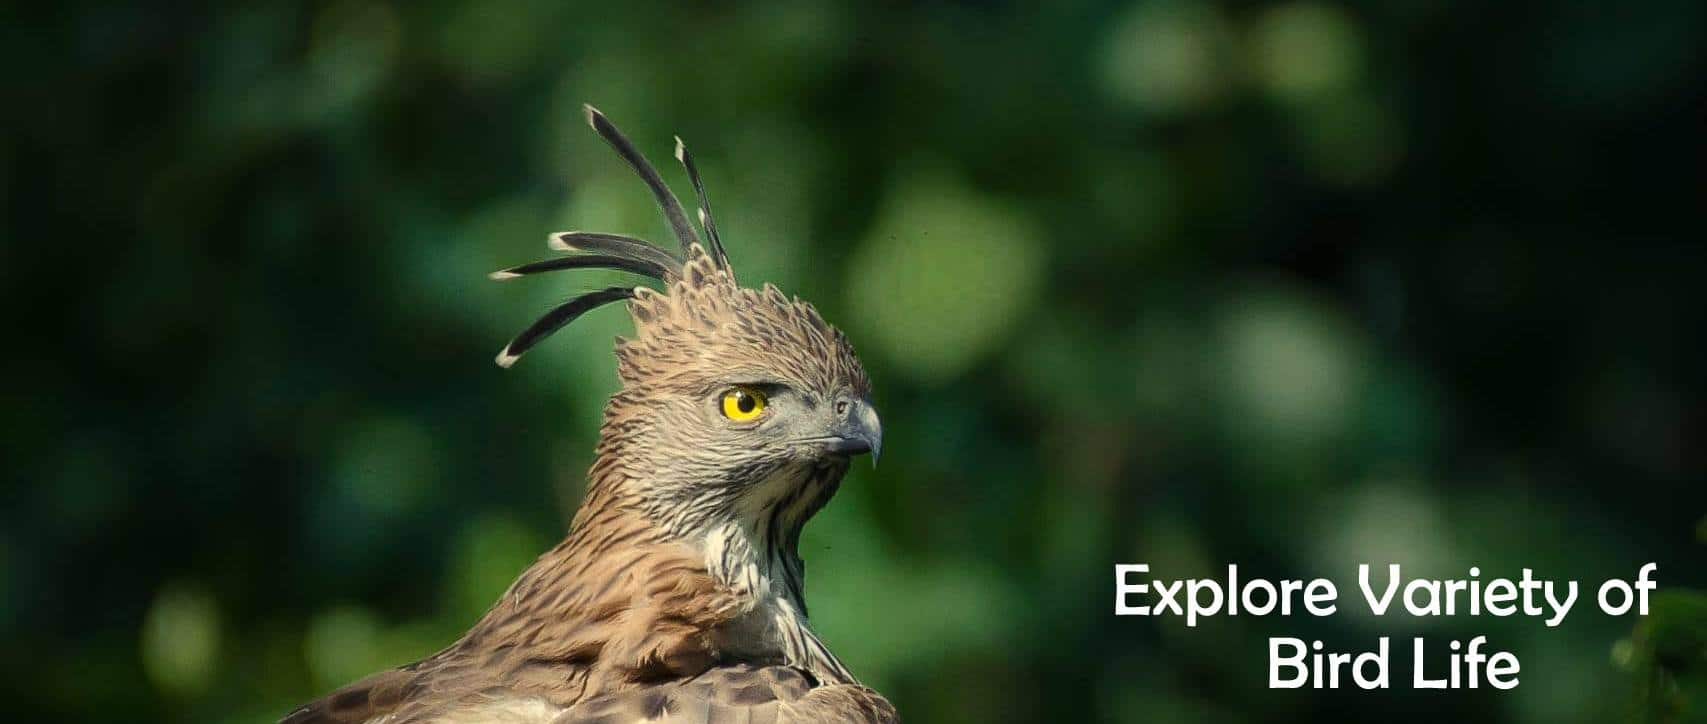 Explore the Variety of Bird Life at Tadoba Andhari Tiger Reserve